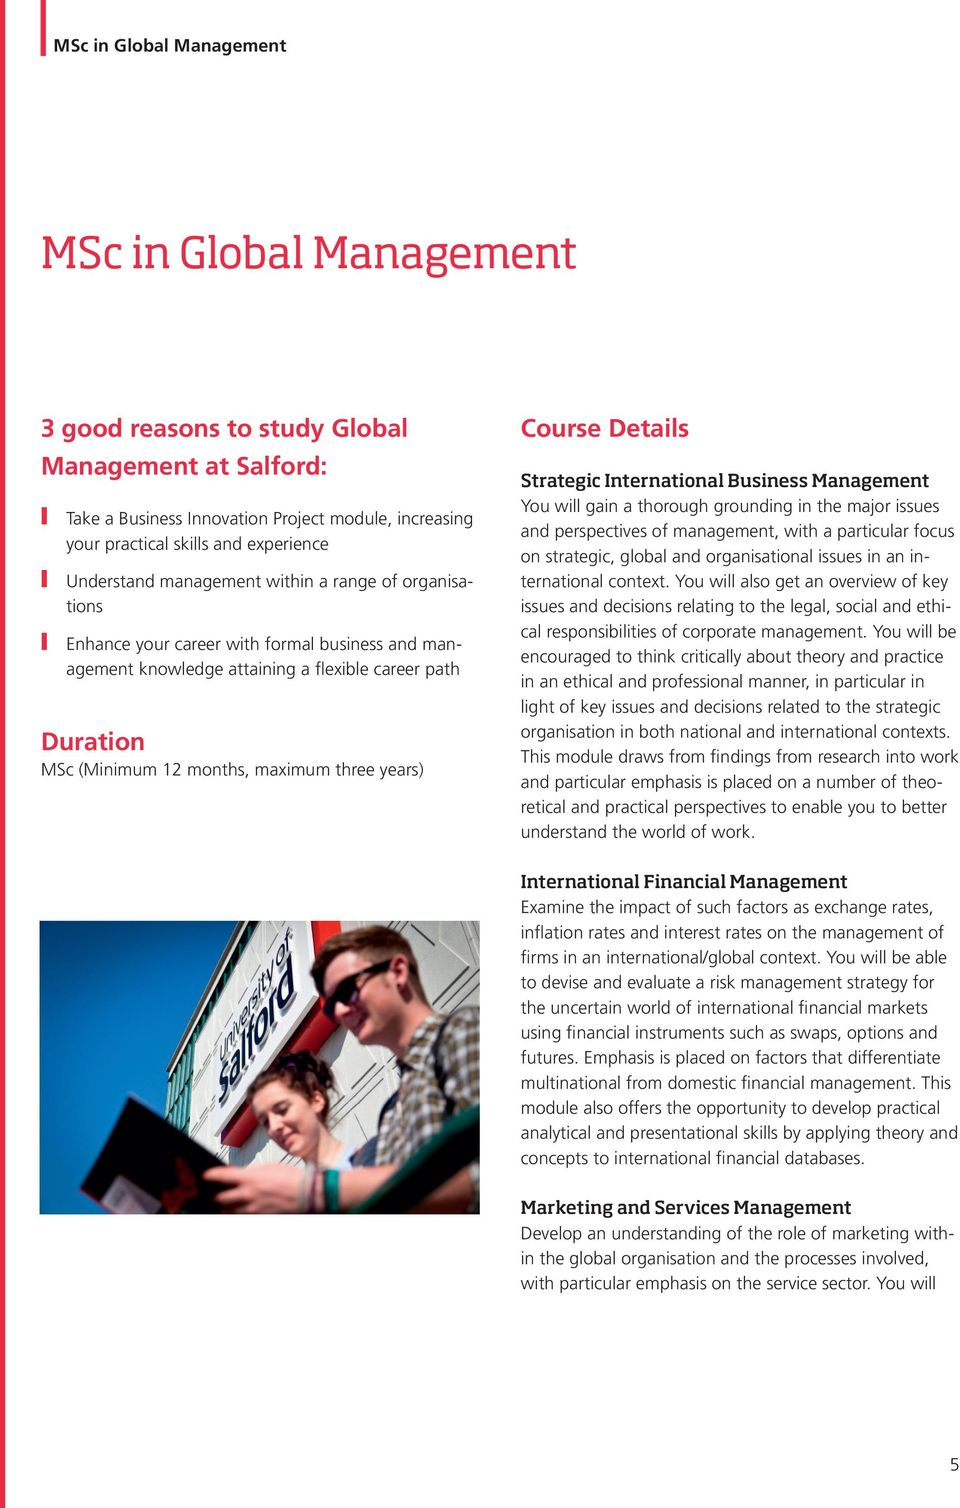 years) Course Details Strategic International Business Management You will gain a thorough grounding in the major issues and perspectives of management, with a particular focus on strategic, global